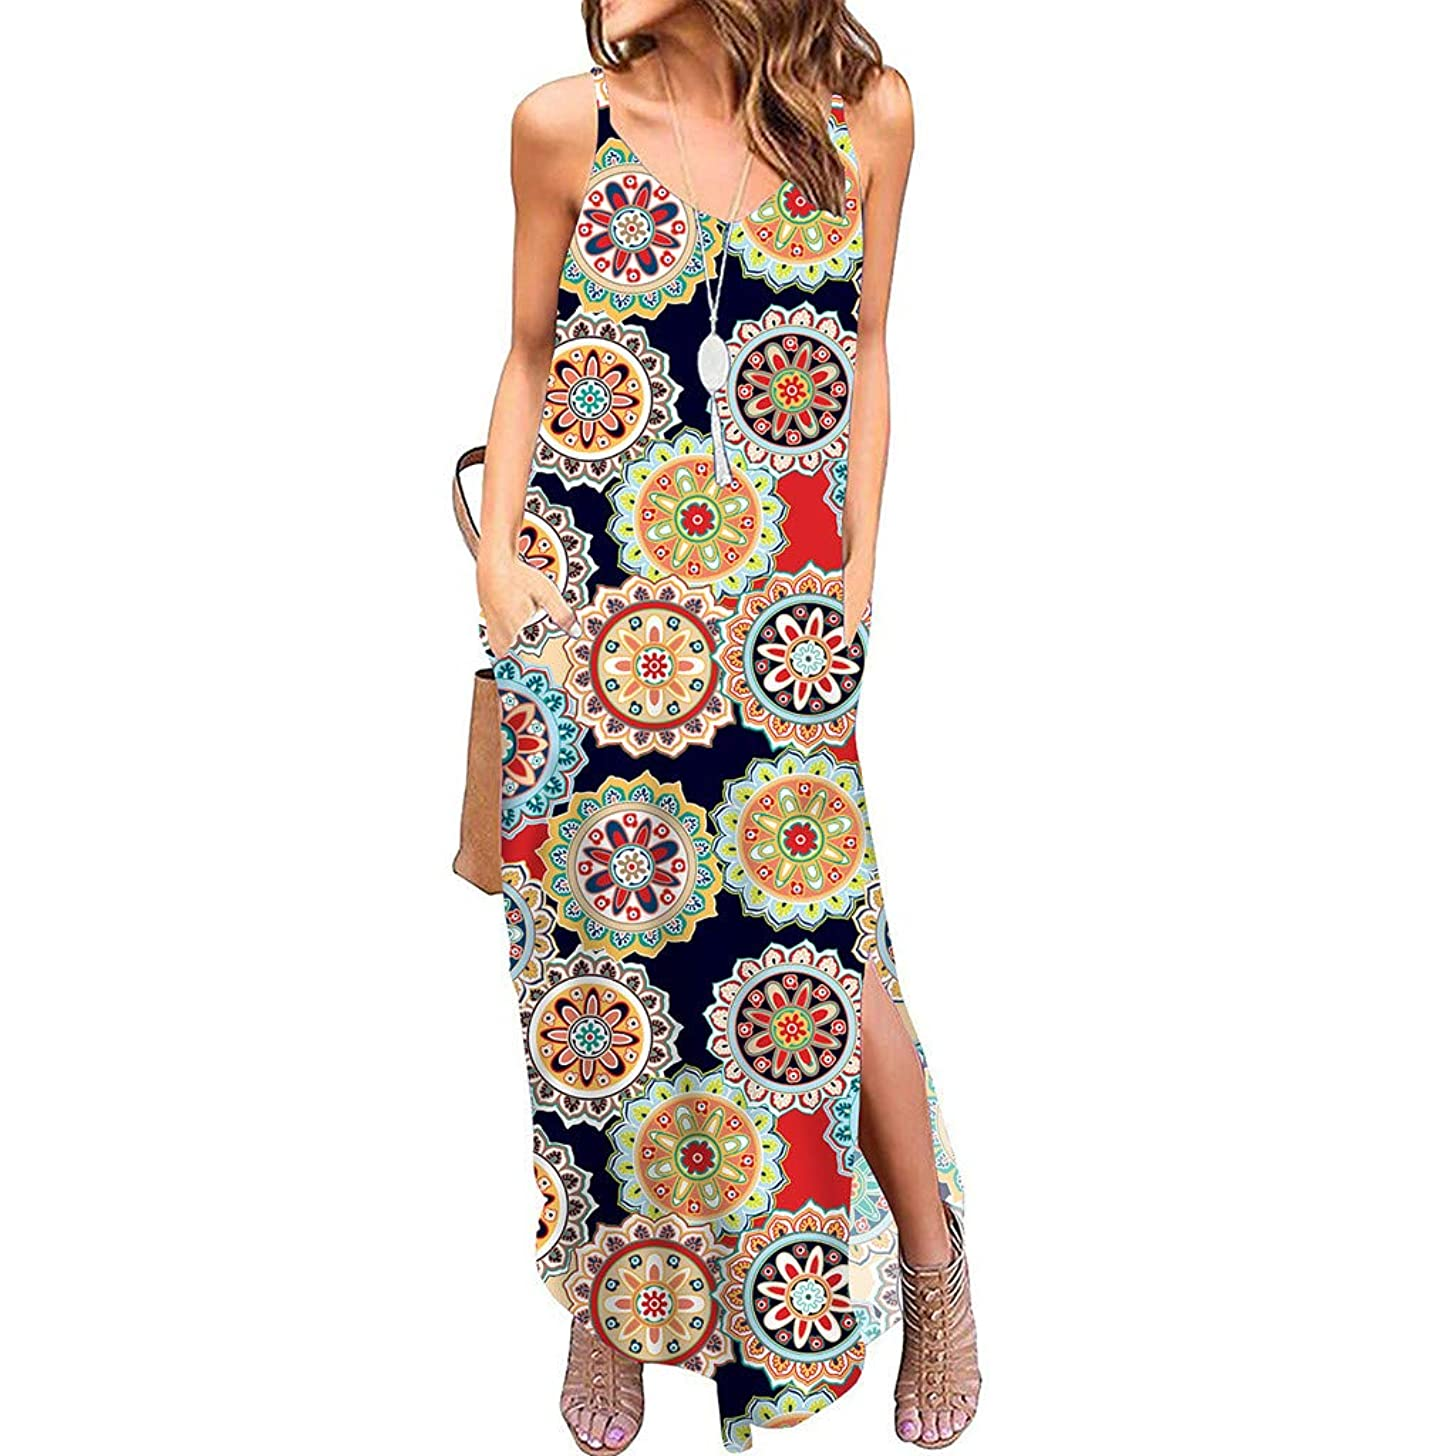 Women's Summer Dress Casual Loose Beach Cover Up Long Plain Print Cami Maxi Dresses Tank Sundress with Pocket